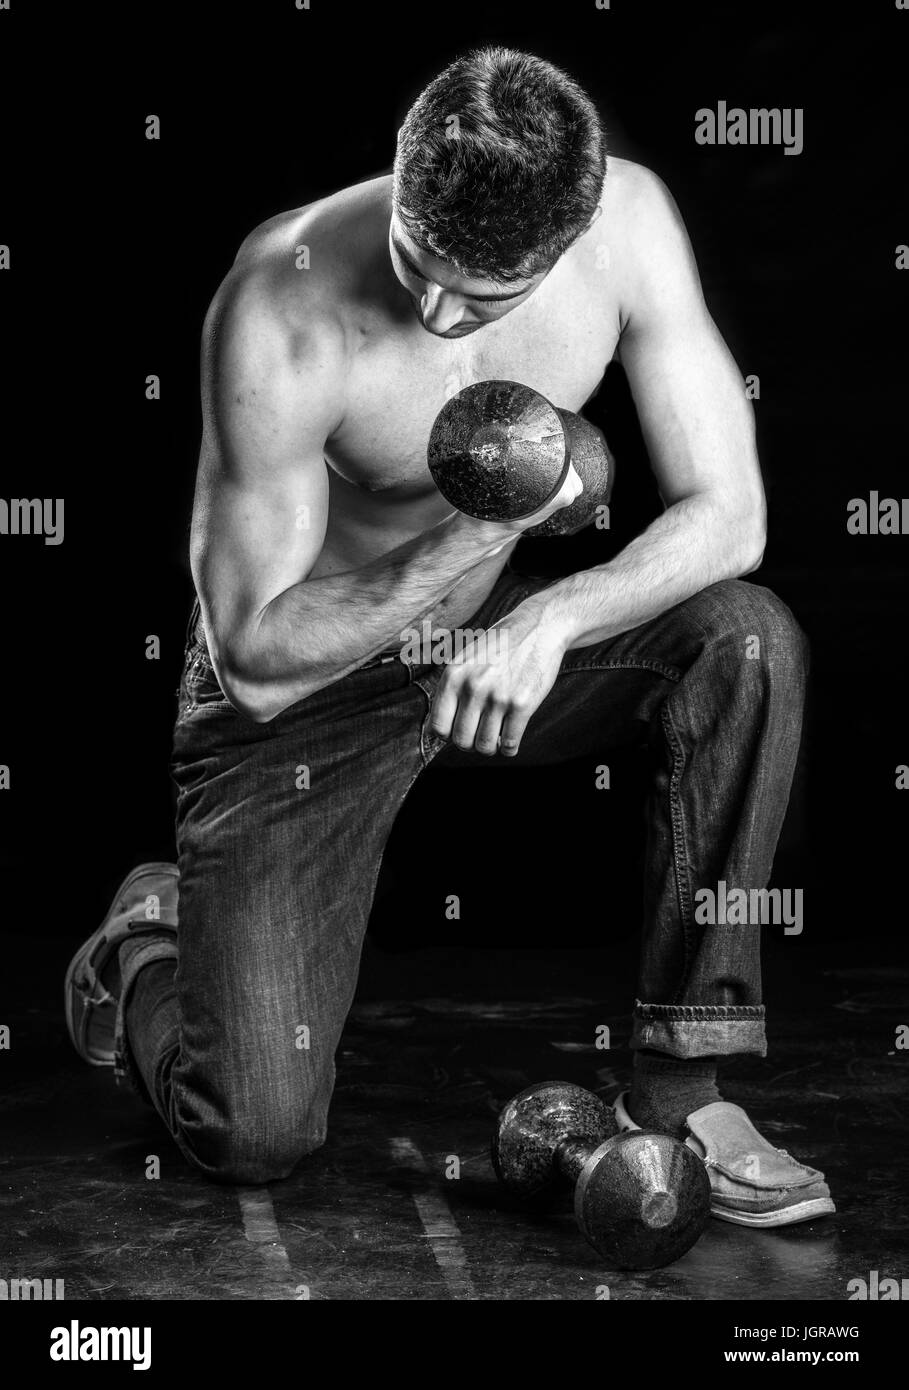 Young Man Working Out Biceps - Dumbbell Concentration Curl - Stock Image